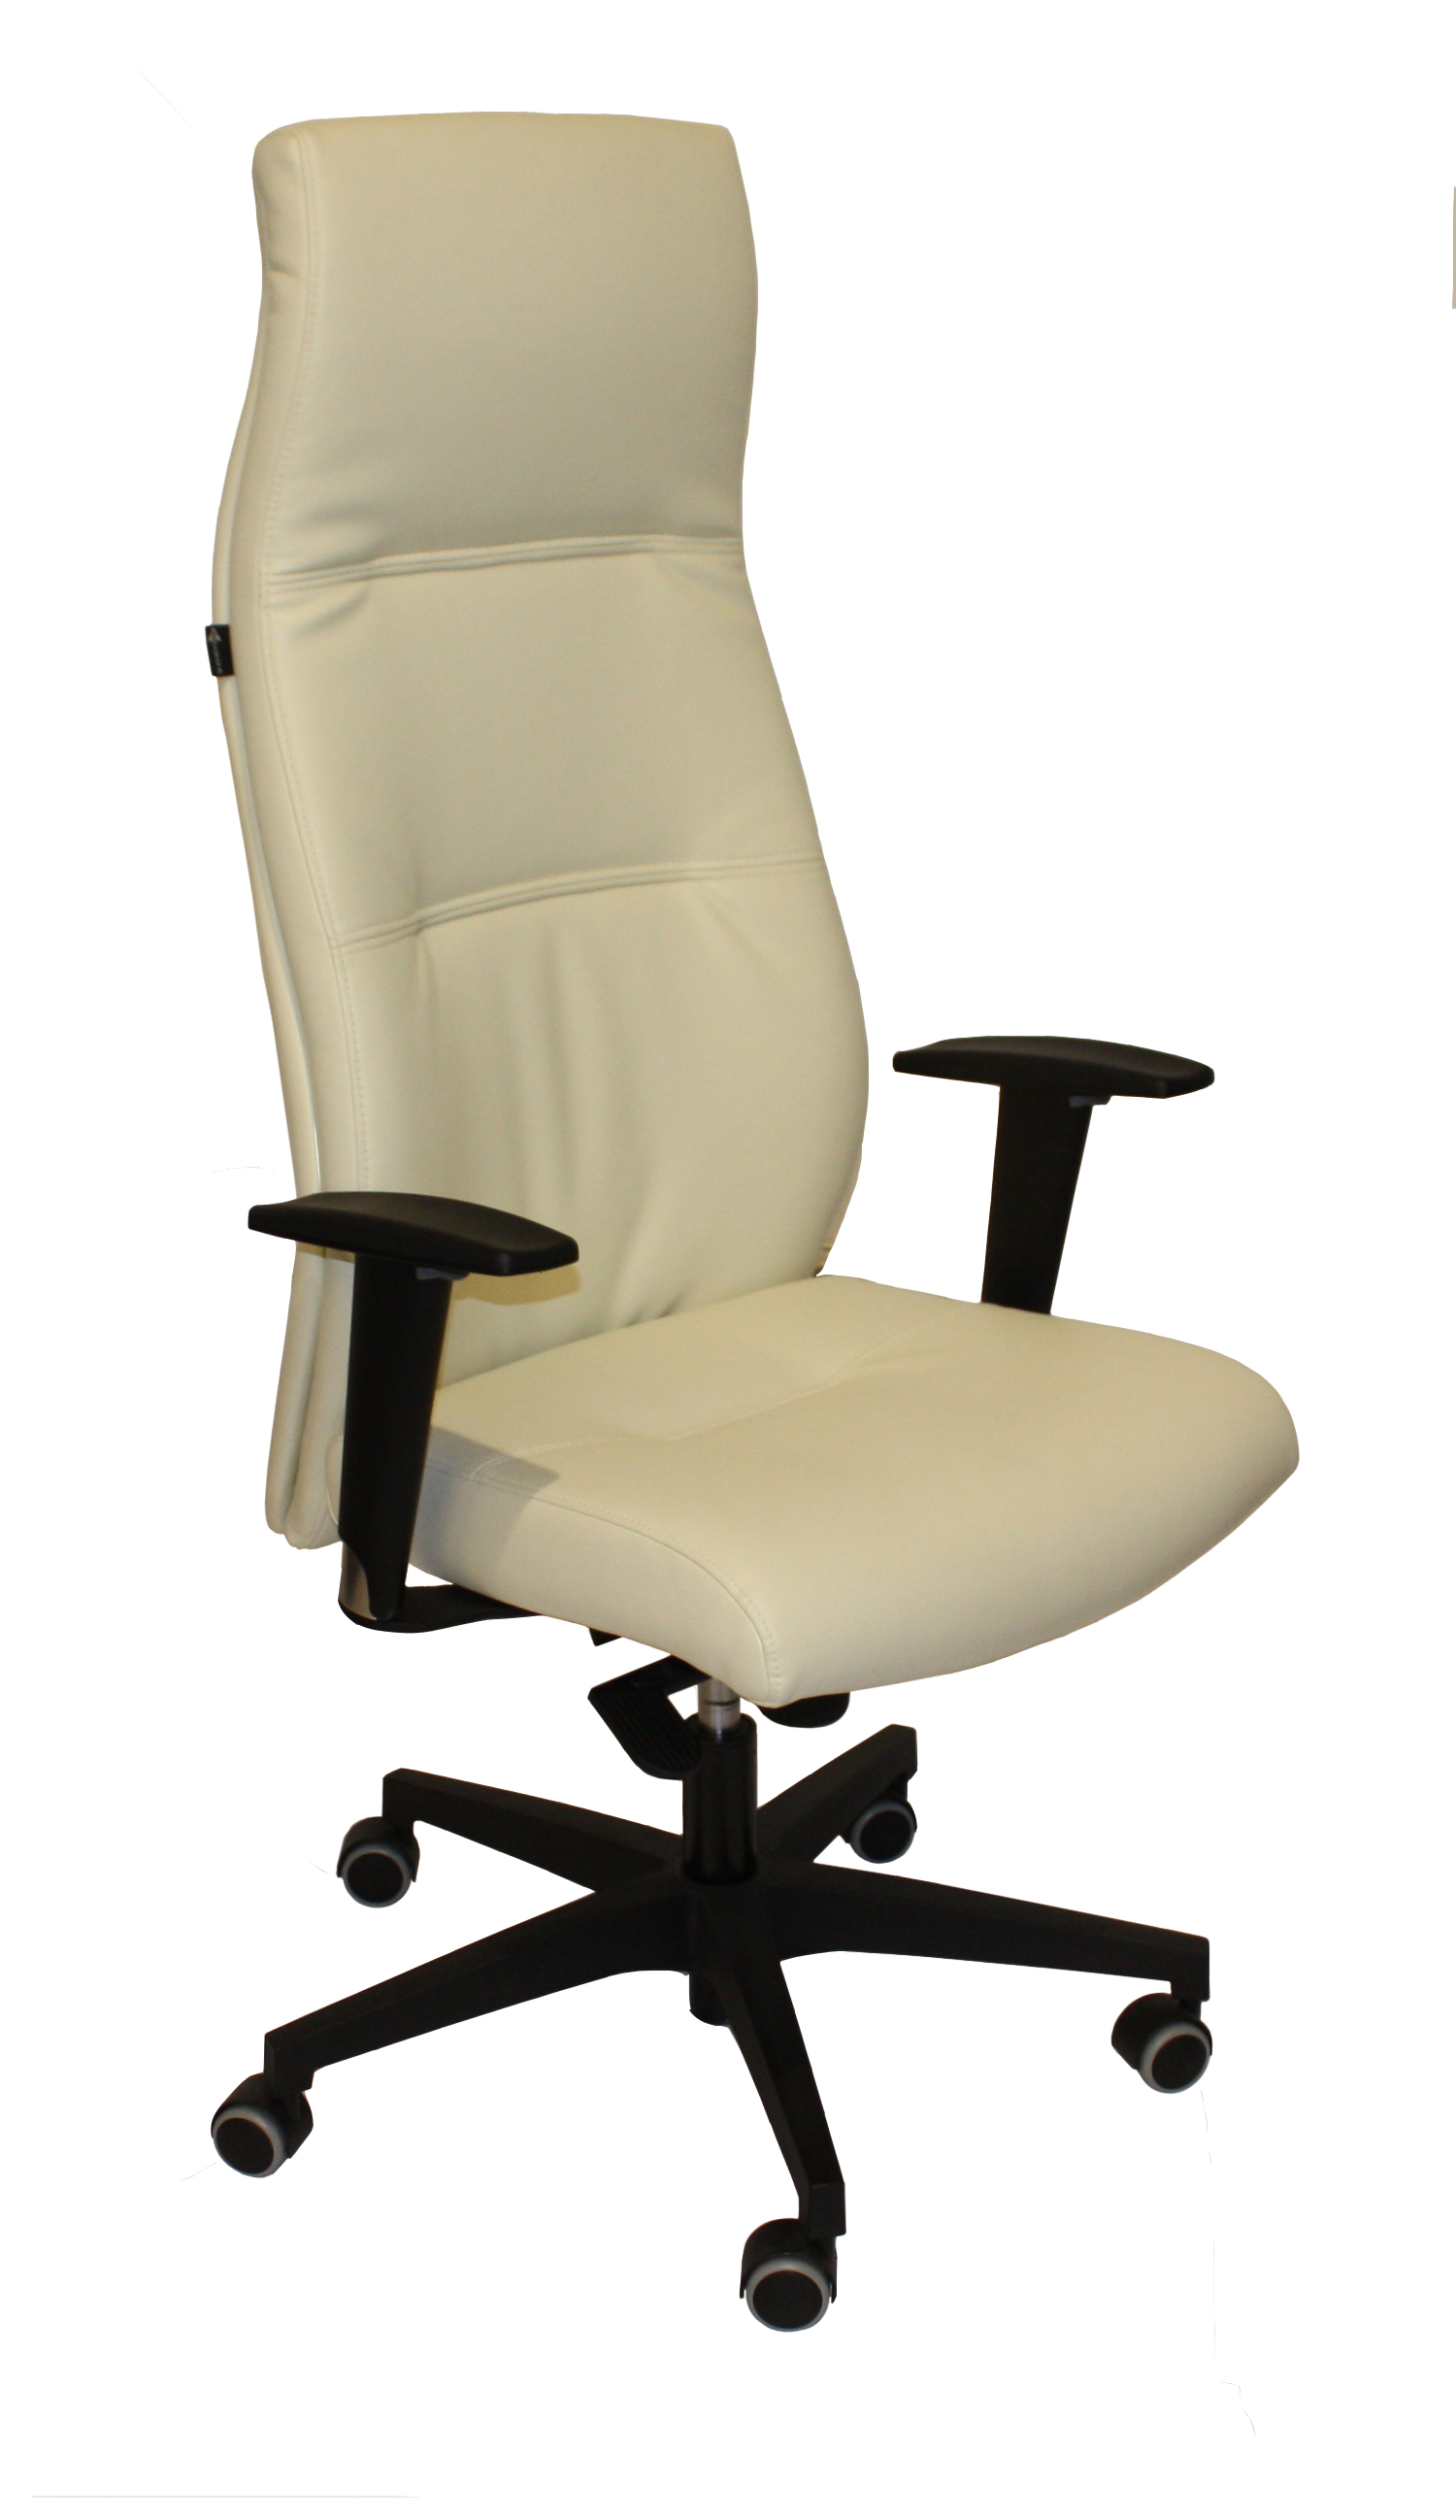 Desk Chair Target Cool Desk Chairs Target White Office Chair Target White